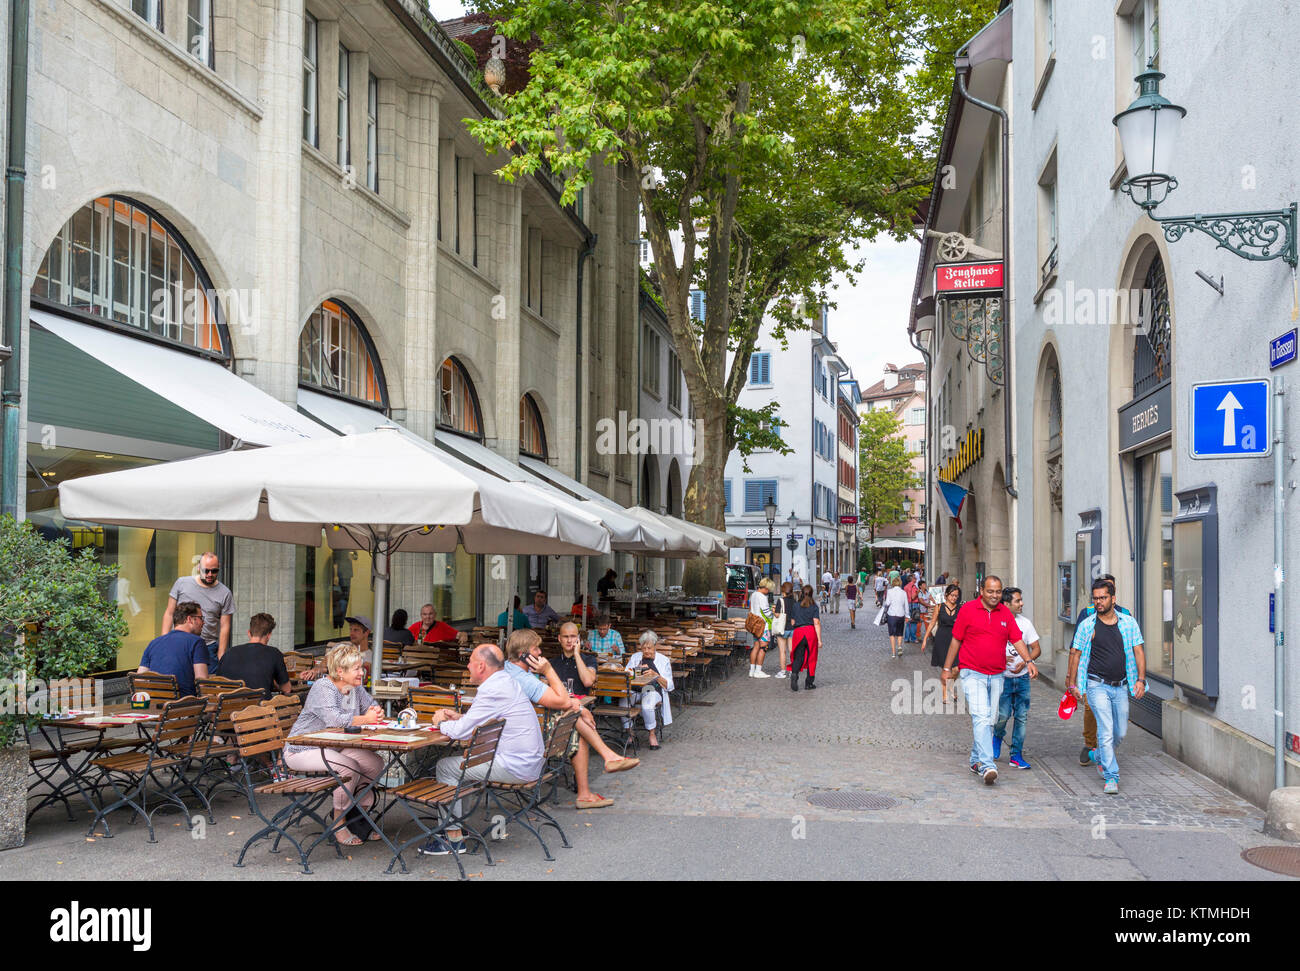 Cafe on In Gassen, Zurich, Switzerland - Stock Image